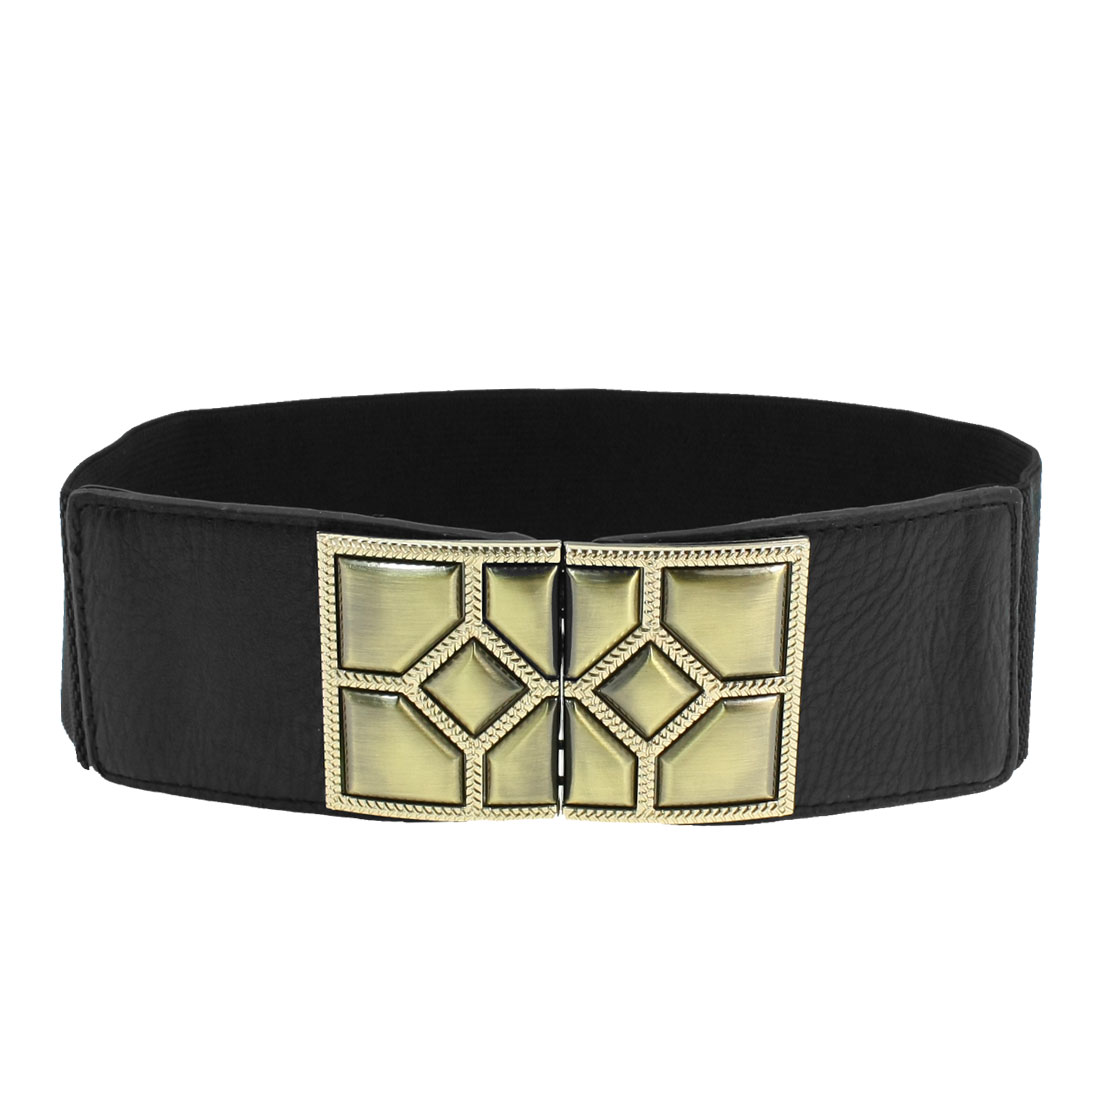 Metal Interlock Buckle Faux Leather Black Textured Elastic Belt for Woman